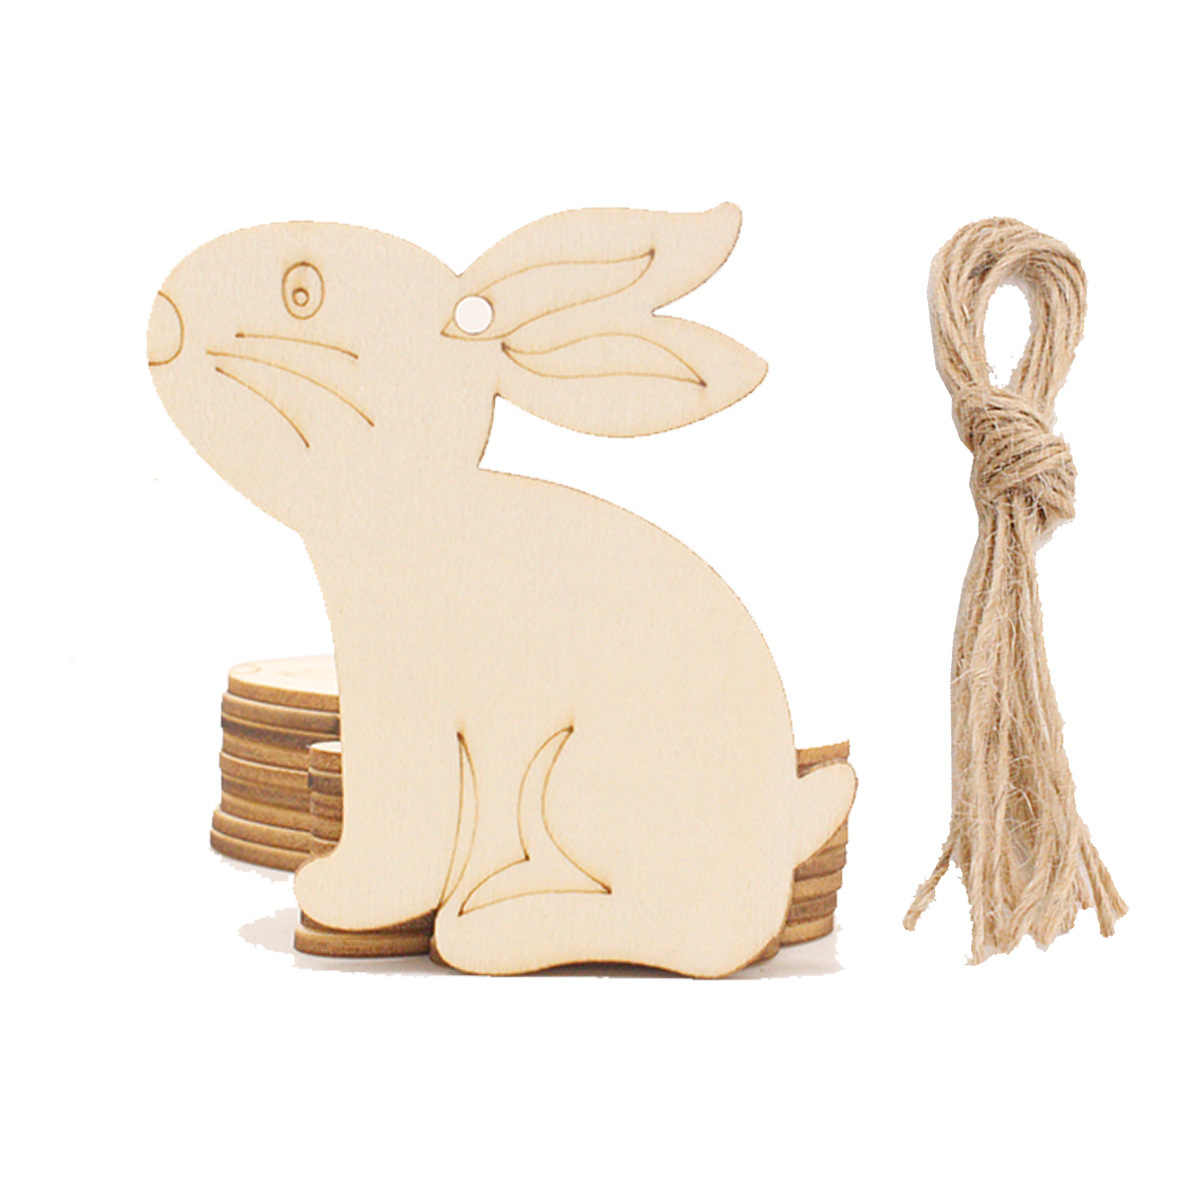 10pcs Easter Wooden Chicken Ornament Unfinished Hanging Craft Easter Wood Discs With Rope For Diy Painting Craft